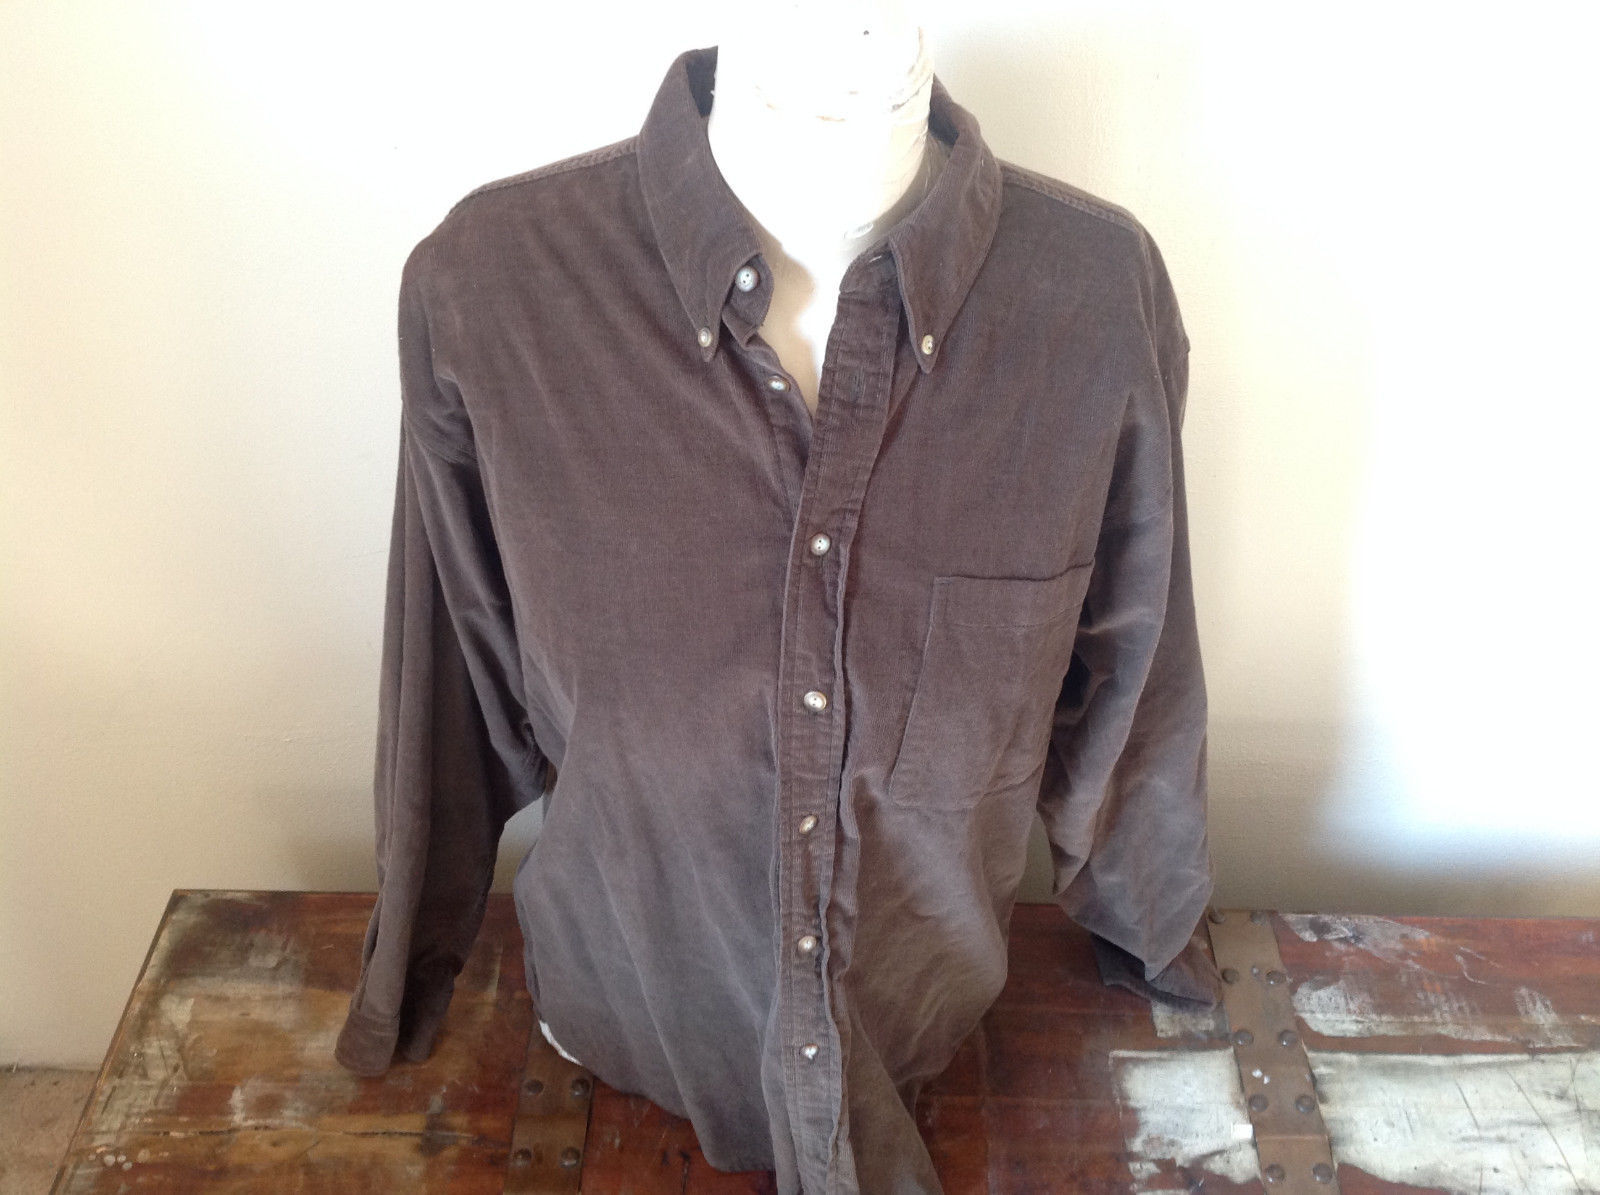 John Ashford Green Brown Corduroy Long Sleeve Button Up Shirt Size Medium